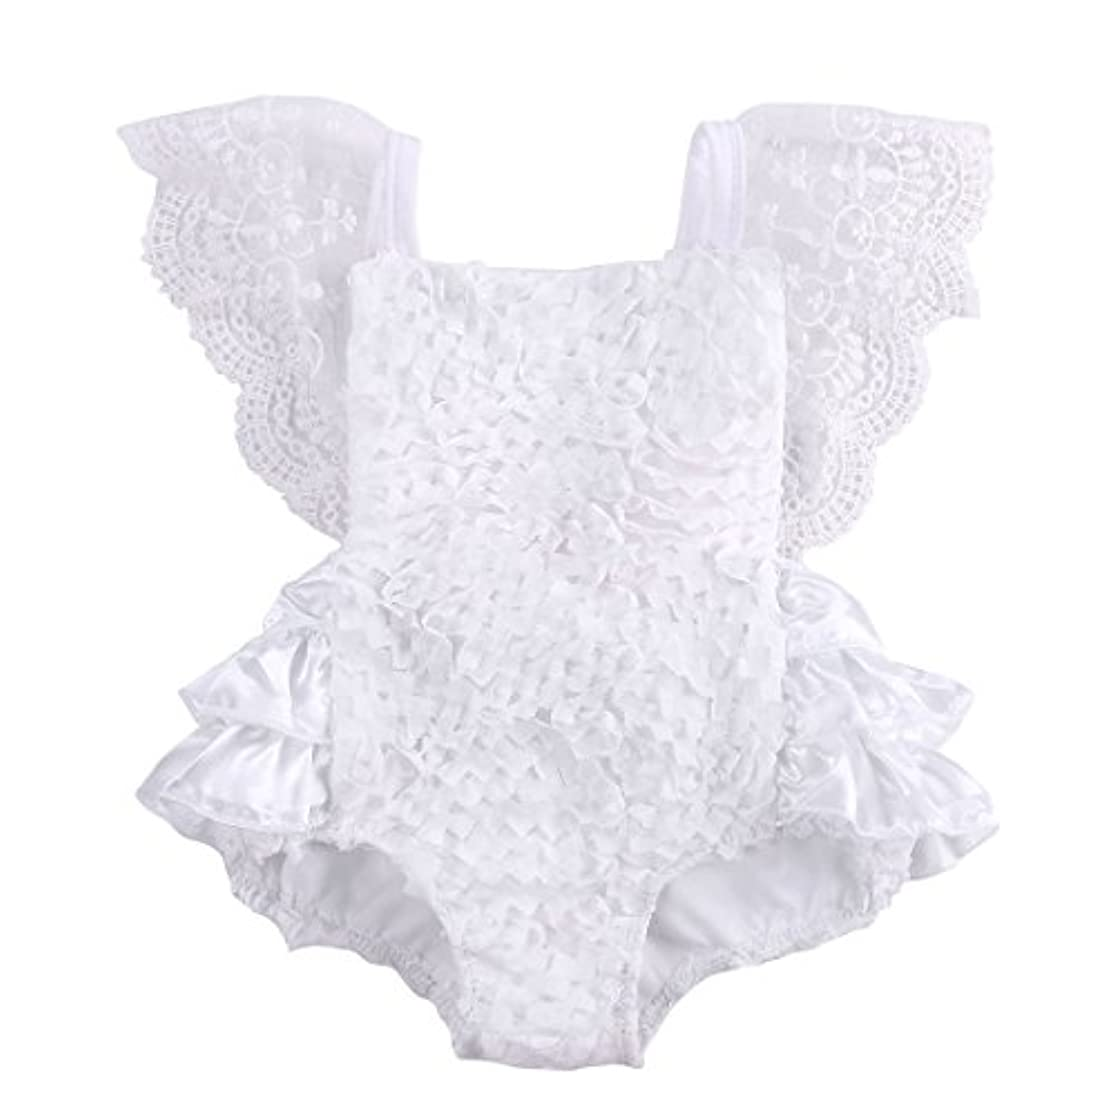 Newborn Baby Girls Lace Floral Bodysuit Tutu Onesies Romper Jumpsuit Fly Sleeve Clothes Summer Outfits wxsamoqa5